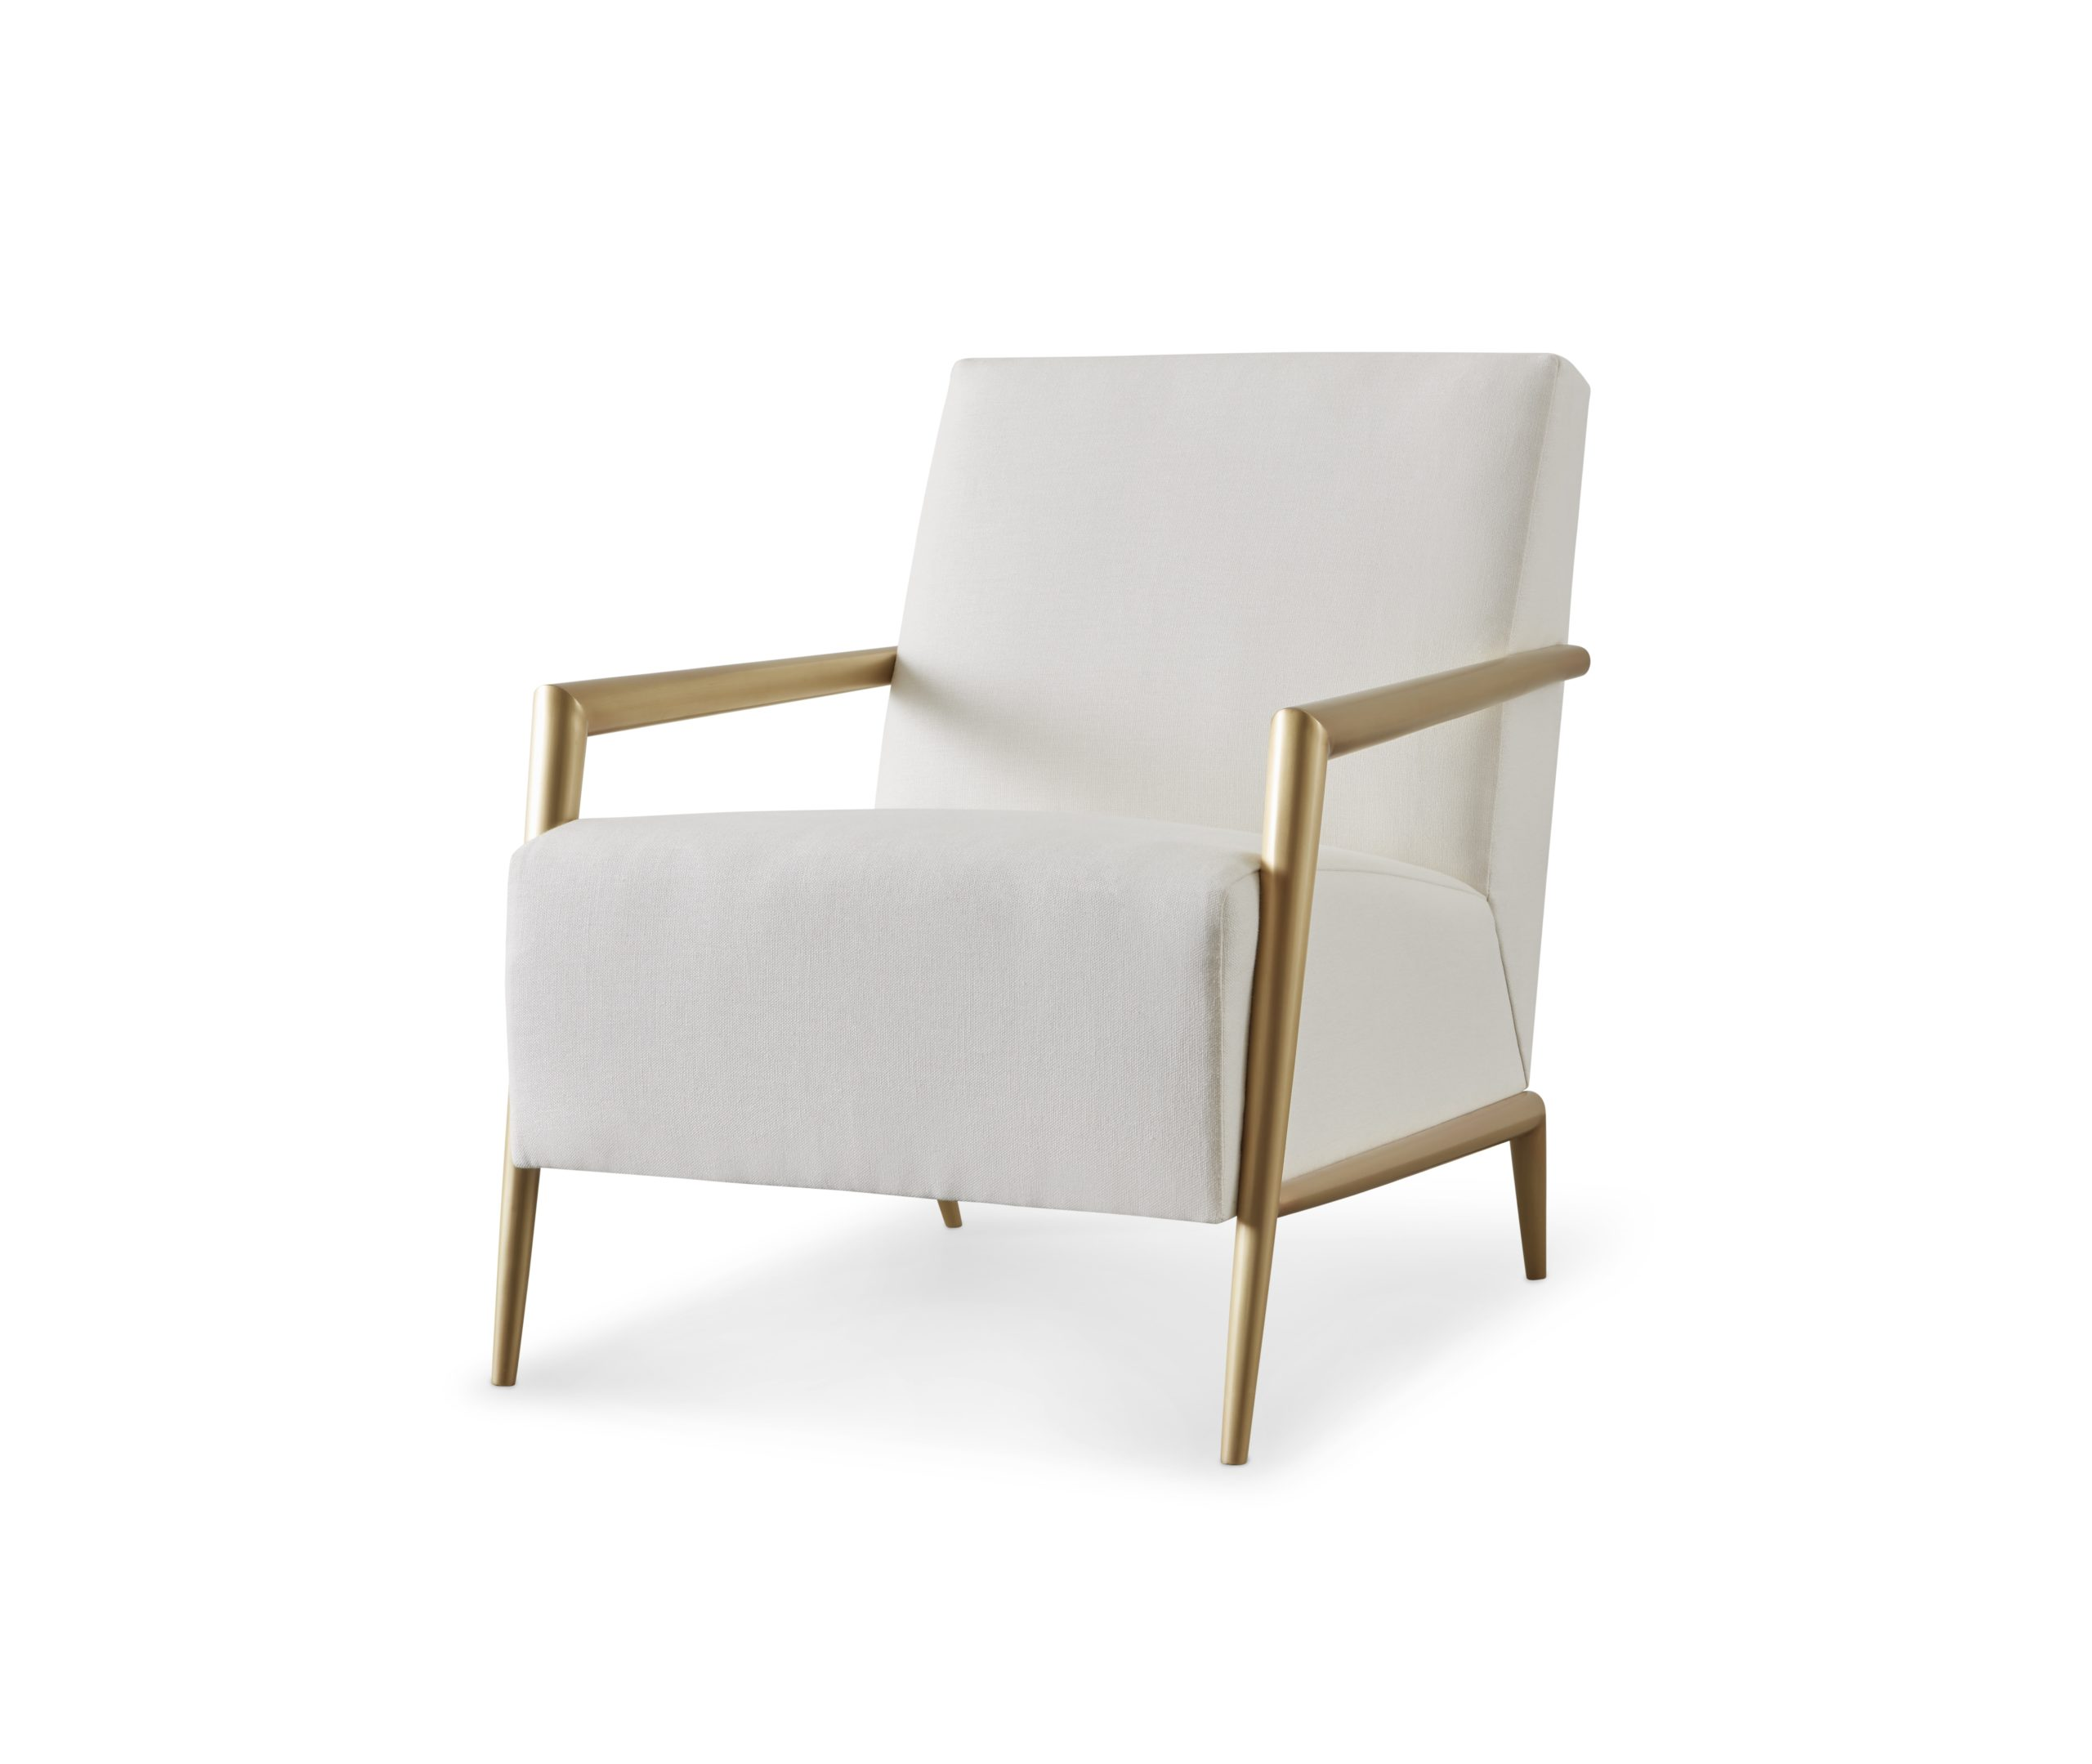 Baker_products_WNWN_enzo_lounge_chair_BAU3104c_FRONT_3QRT-scaled-2